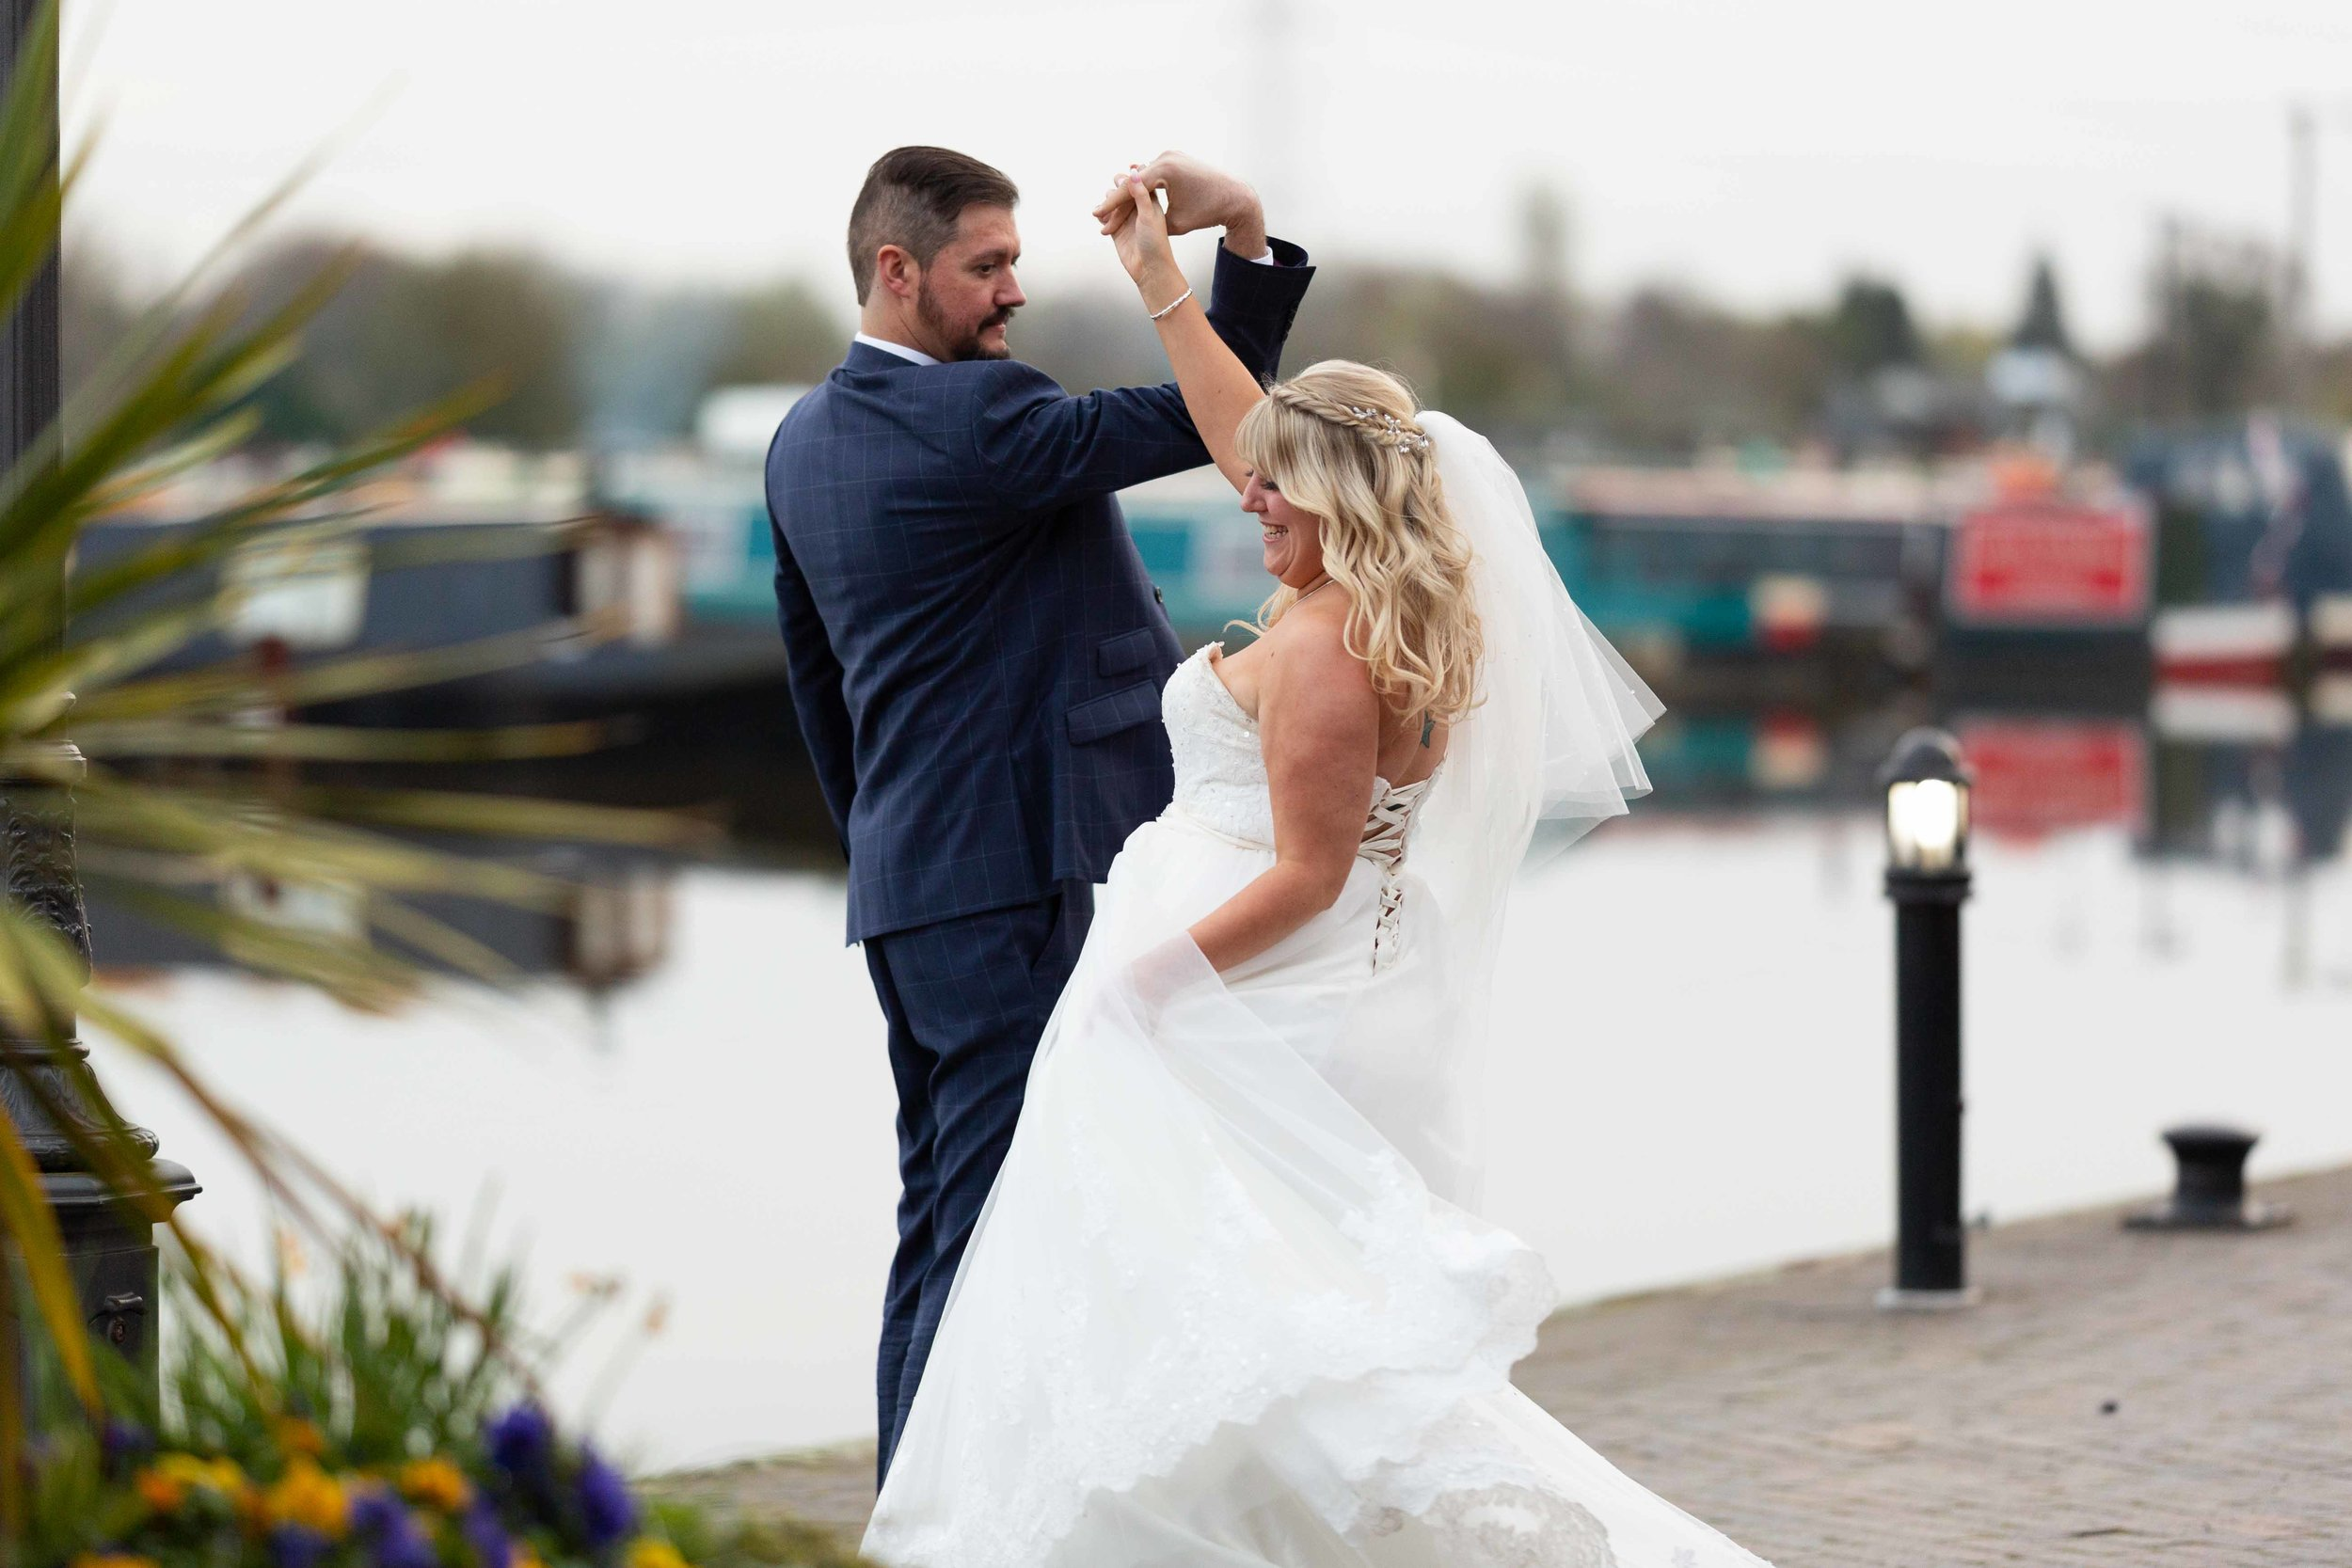 LEA-COOPER-PHOTOGRAPHY-WEDDING-PHOTOGRAPHER-BARTON-MARINA-THE-WATER-FRONT-THE-CROWS-NEST-WOLVERHAMPTON-UK-WEDDING-PHOTOS17.JPG